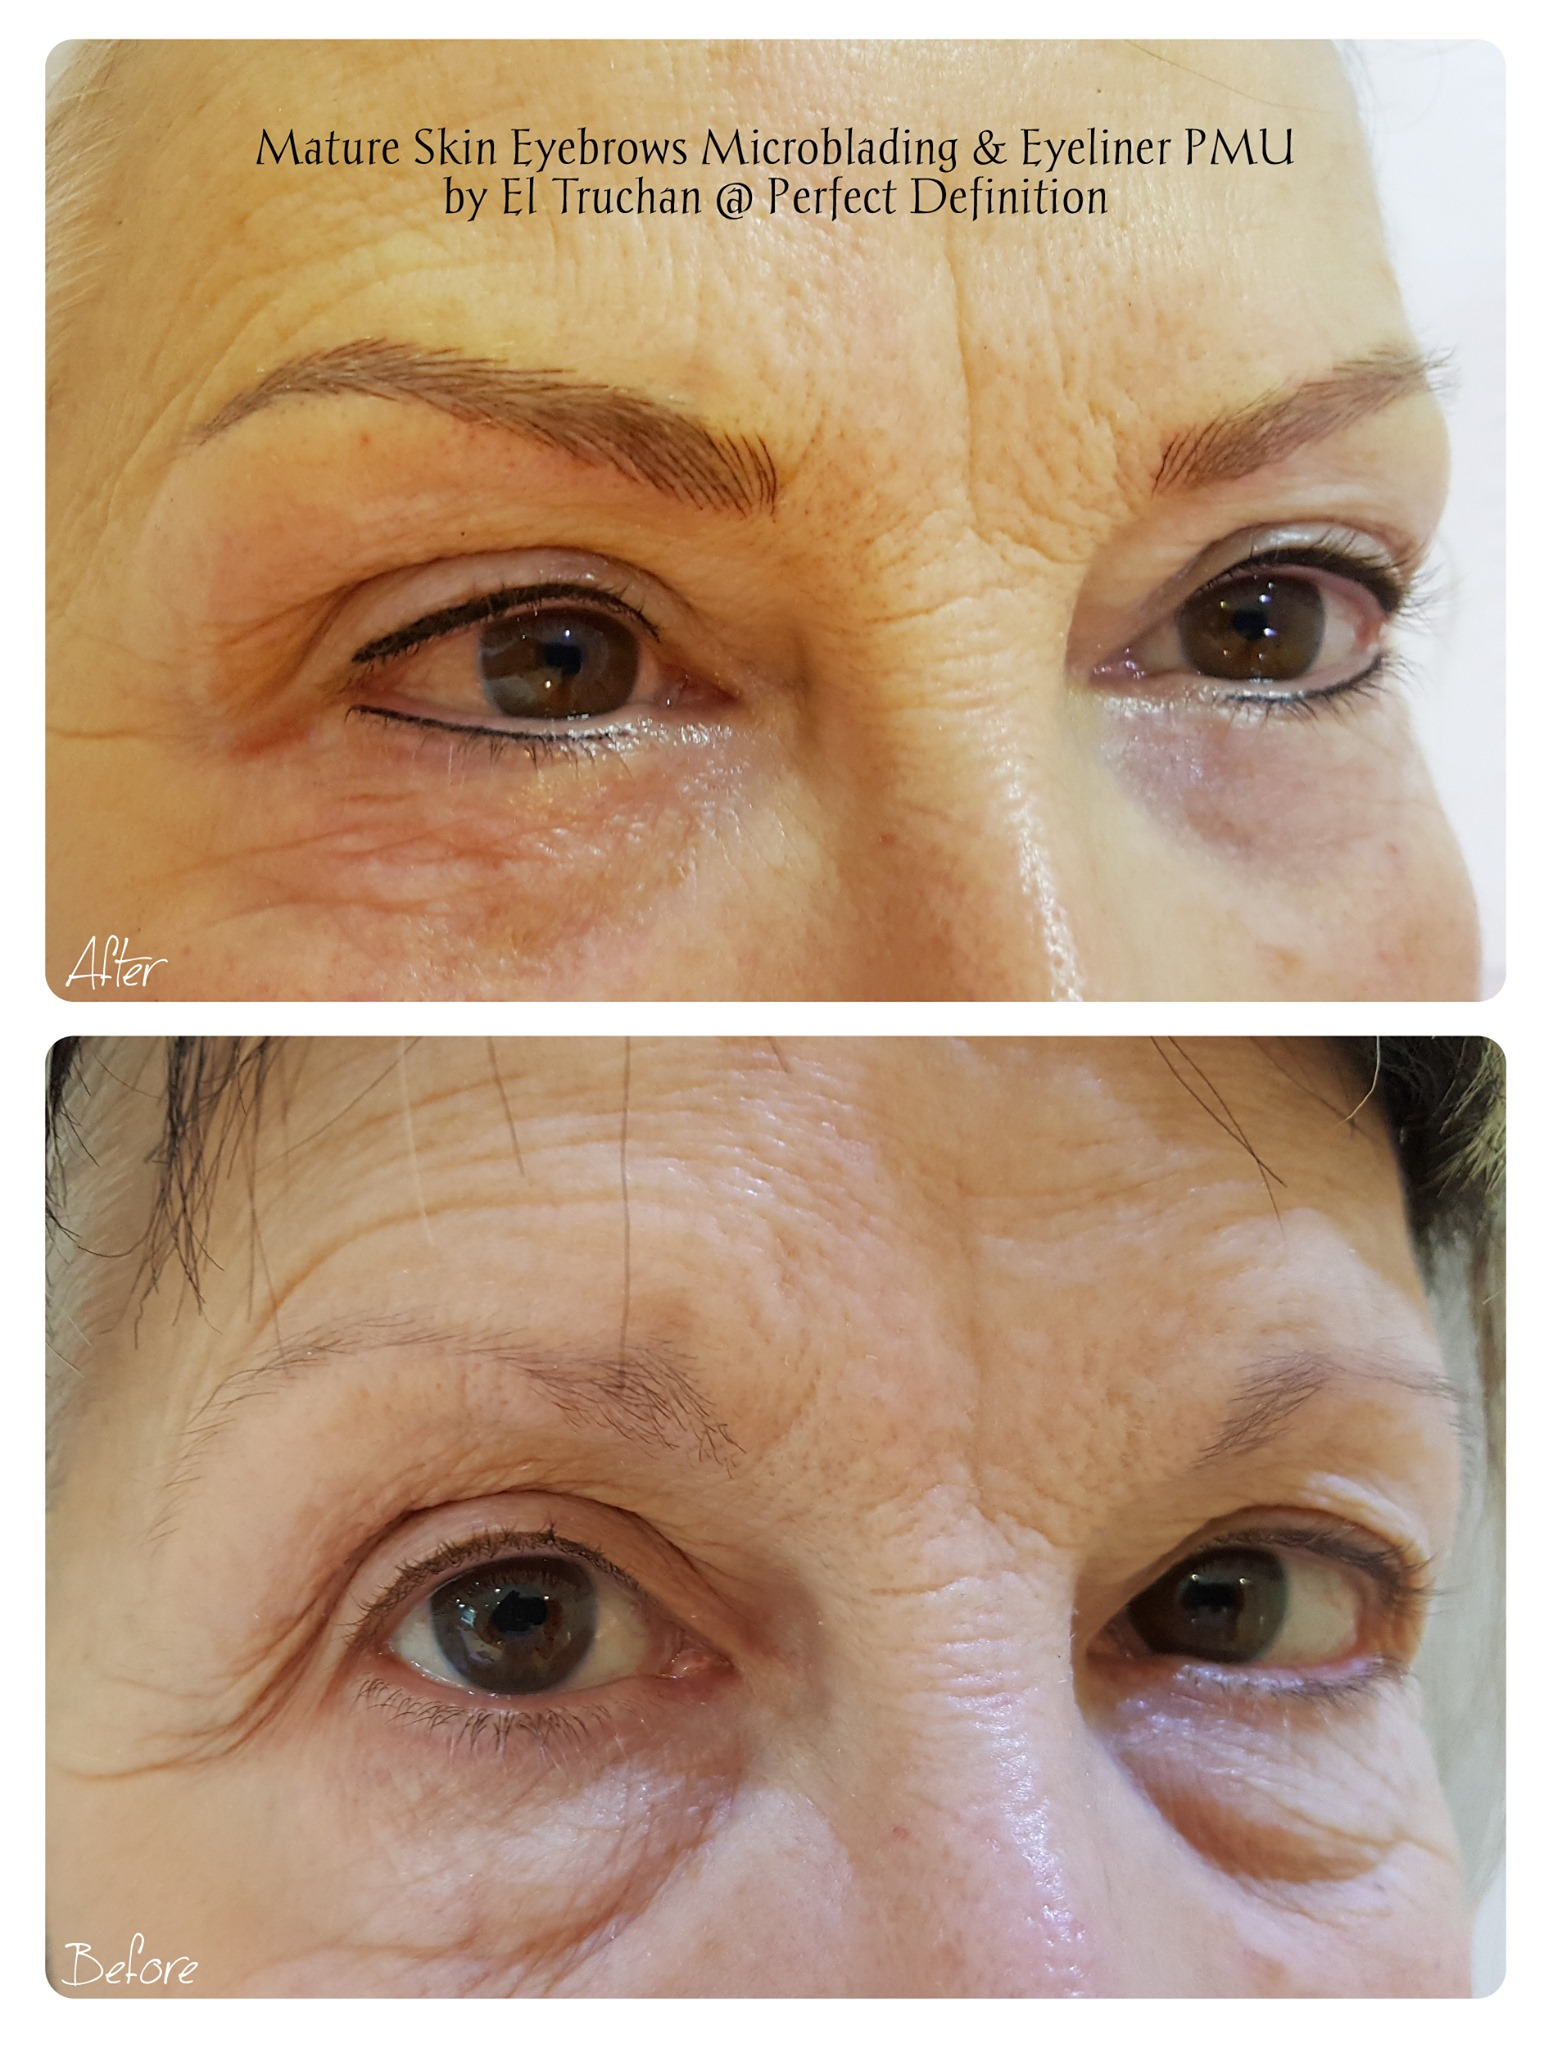 Mature Skin Eyebrows Microblading & Eyel